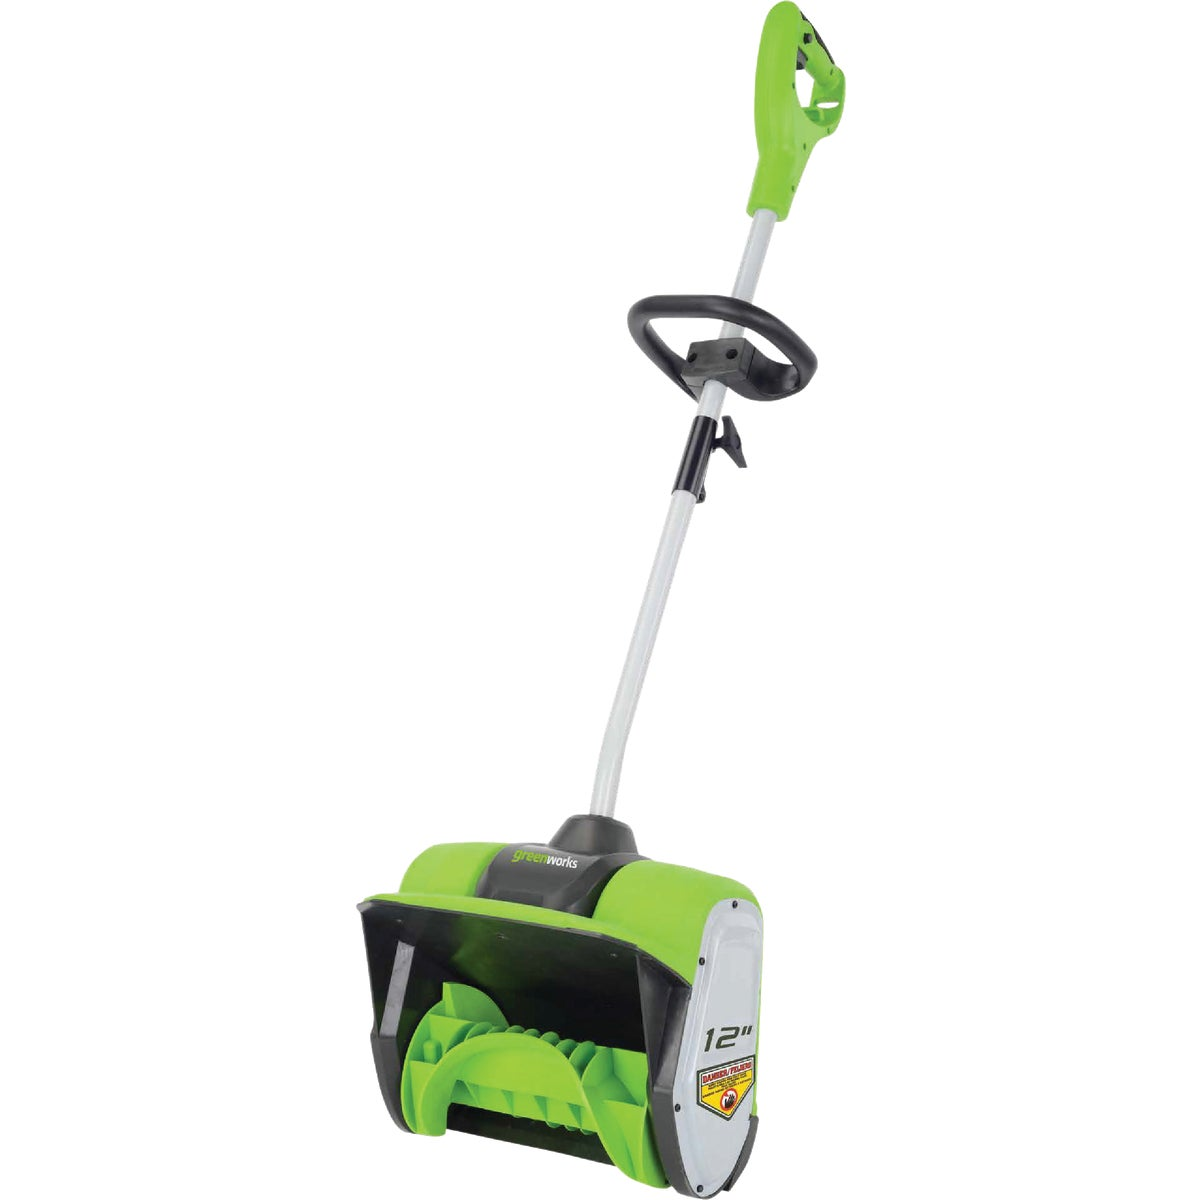 Greenworks 8A Electric Snow Blower Shovel, 2600802